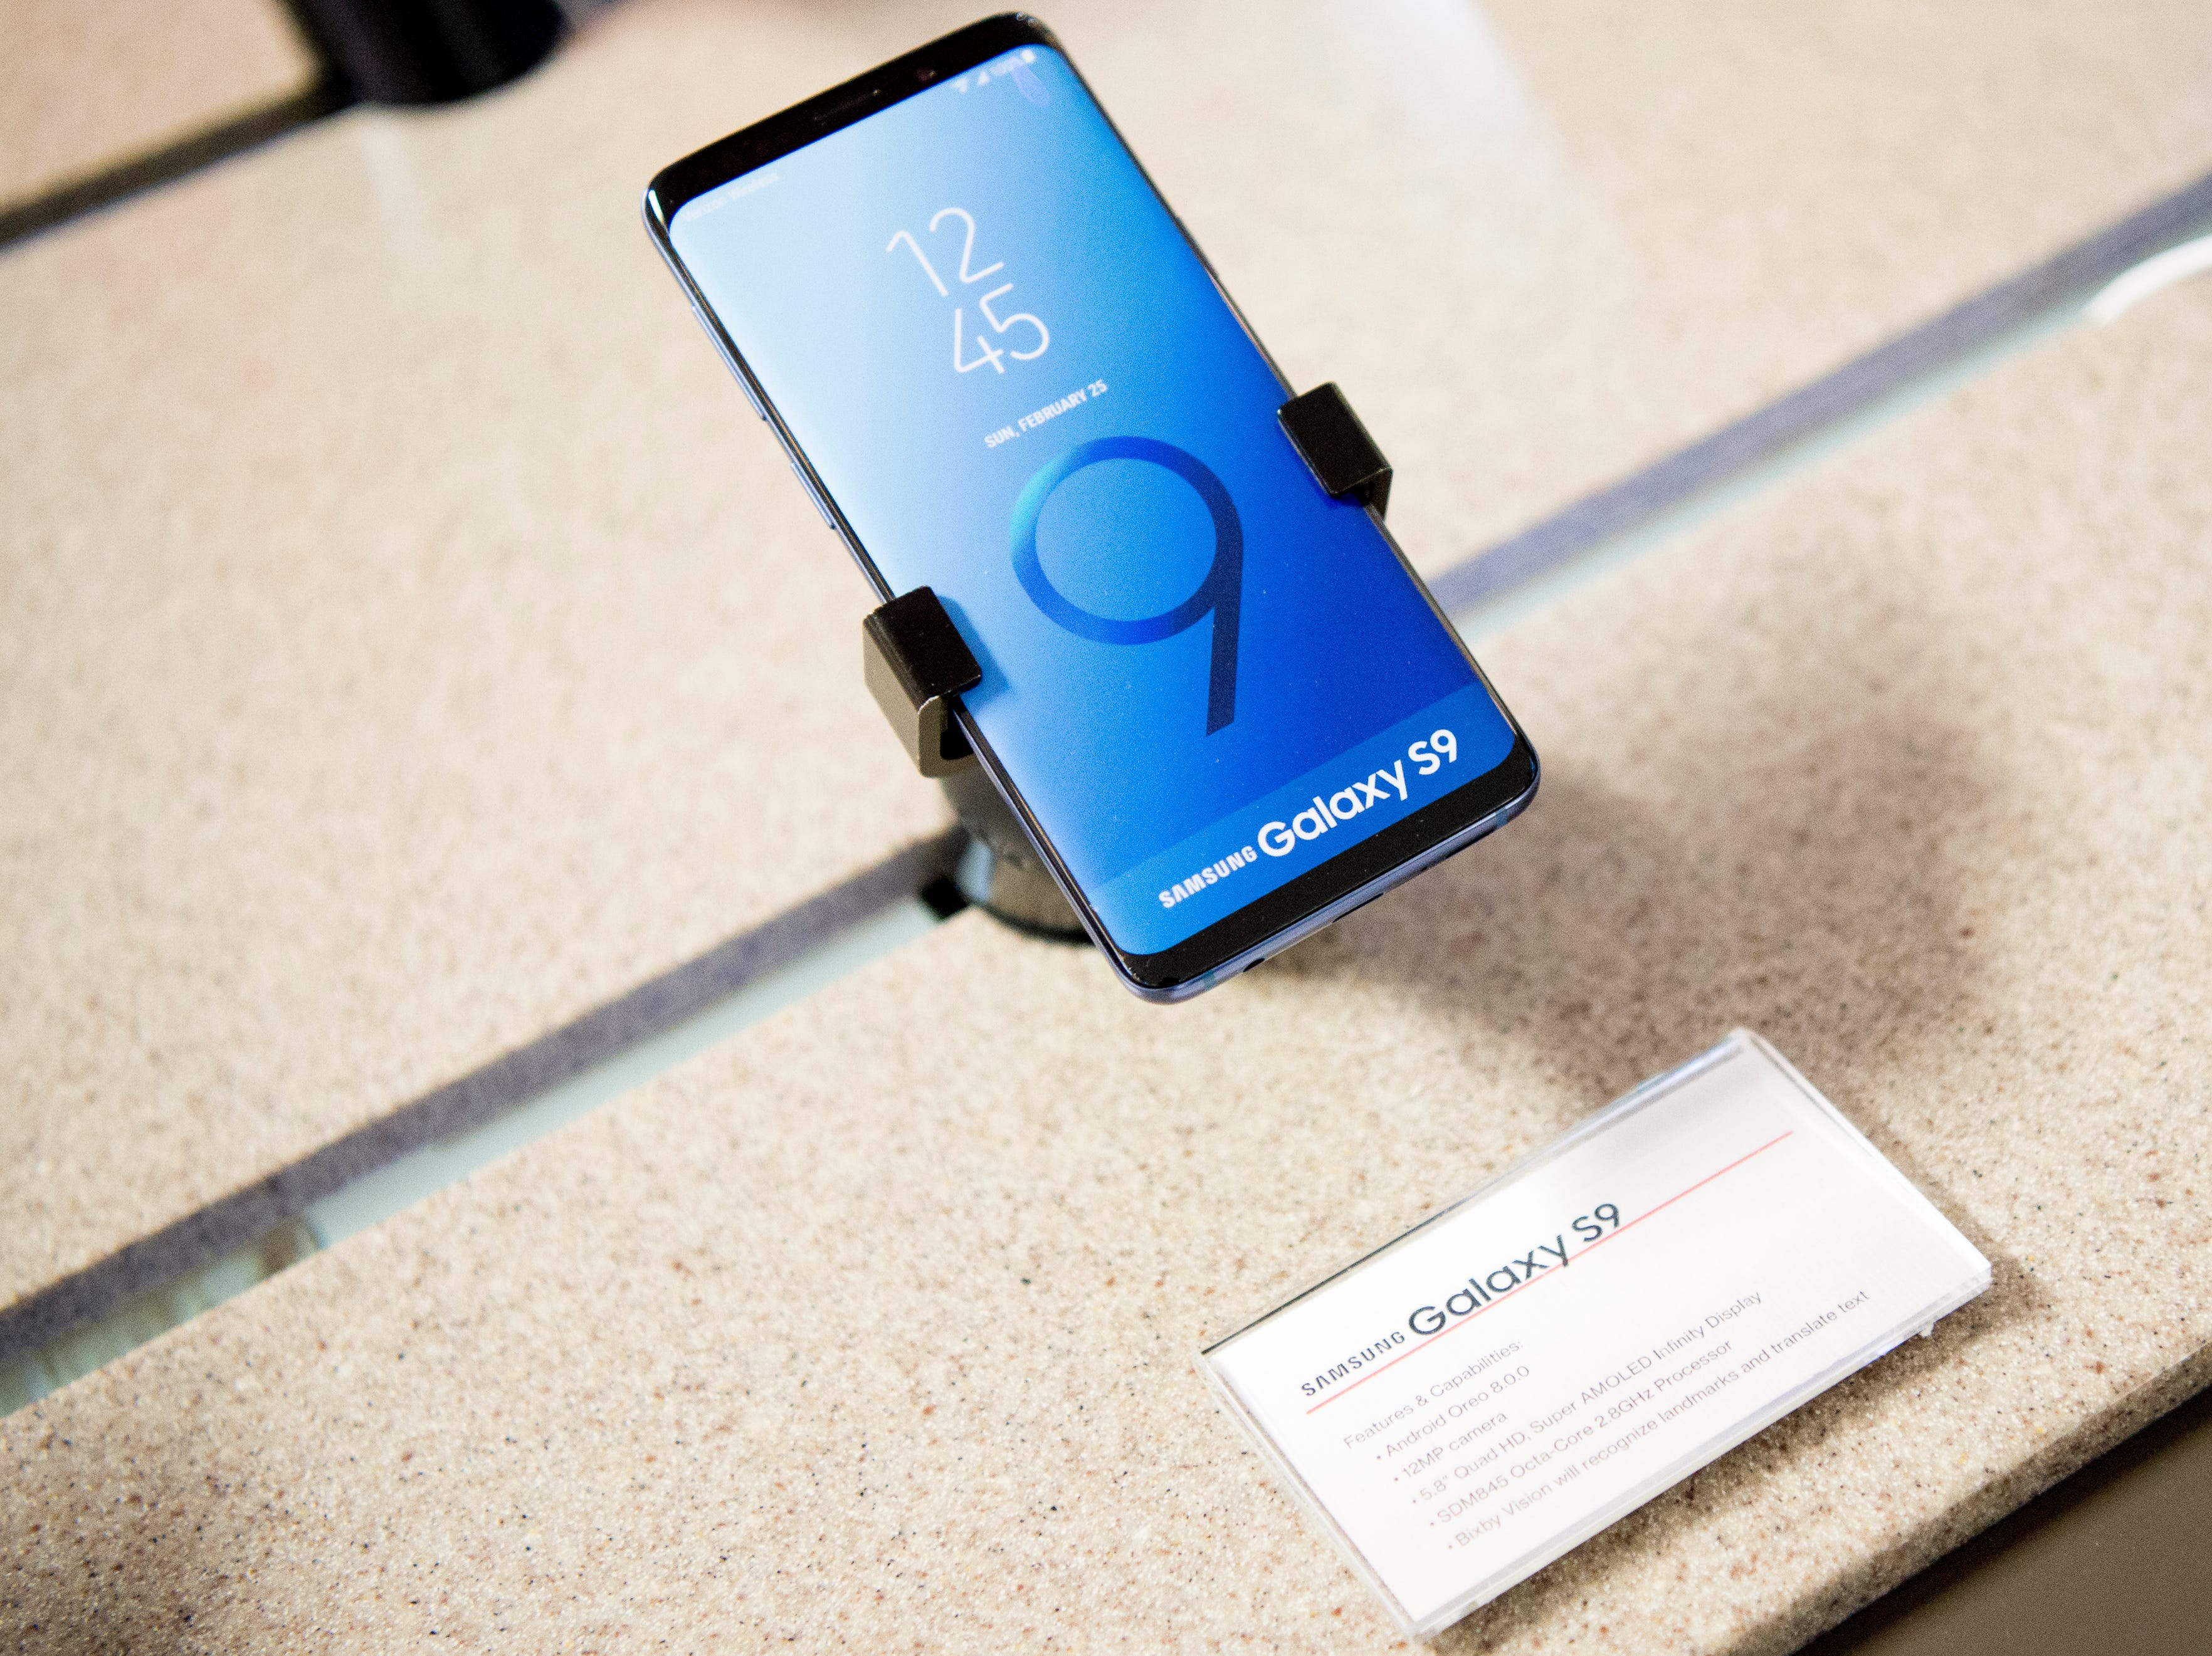 A Samsung Galaxy S9 cell phone is displayed in the mock setup of a Verizon Wireless retail store inside the Cellular Sales headquarters on 9040 Executive Park Drive in West Knoxville, Tennessee on Wednesday, January 16, 2019. An authorized agent of Verizon Wireless, Cellular Sales specializes in retail and support for over 700 of Verizon stores in 42 states.